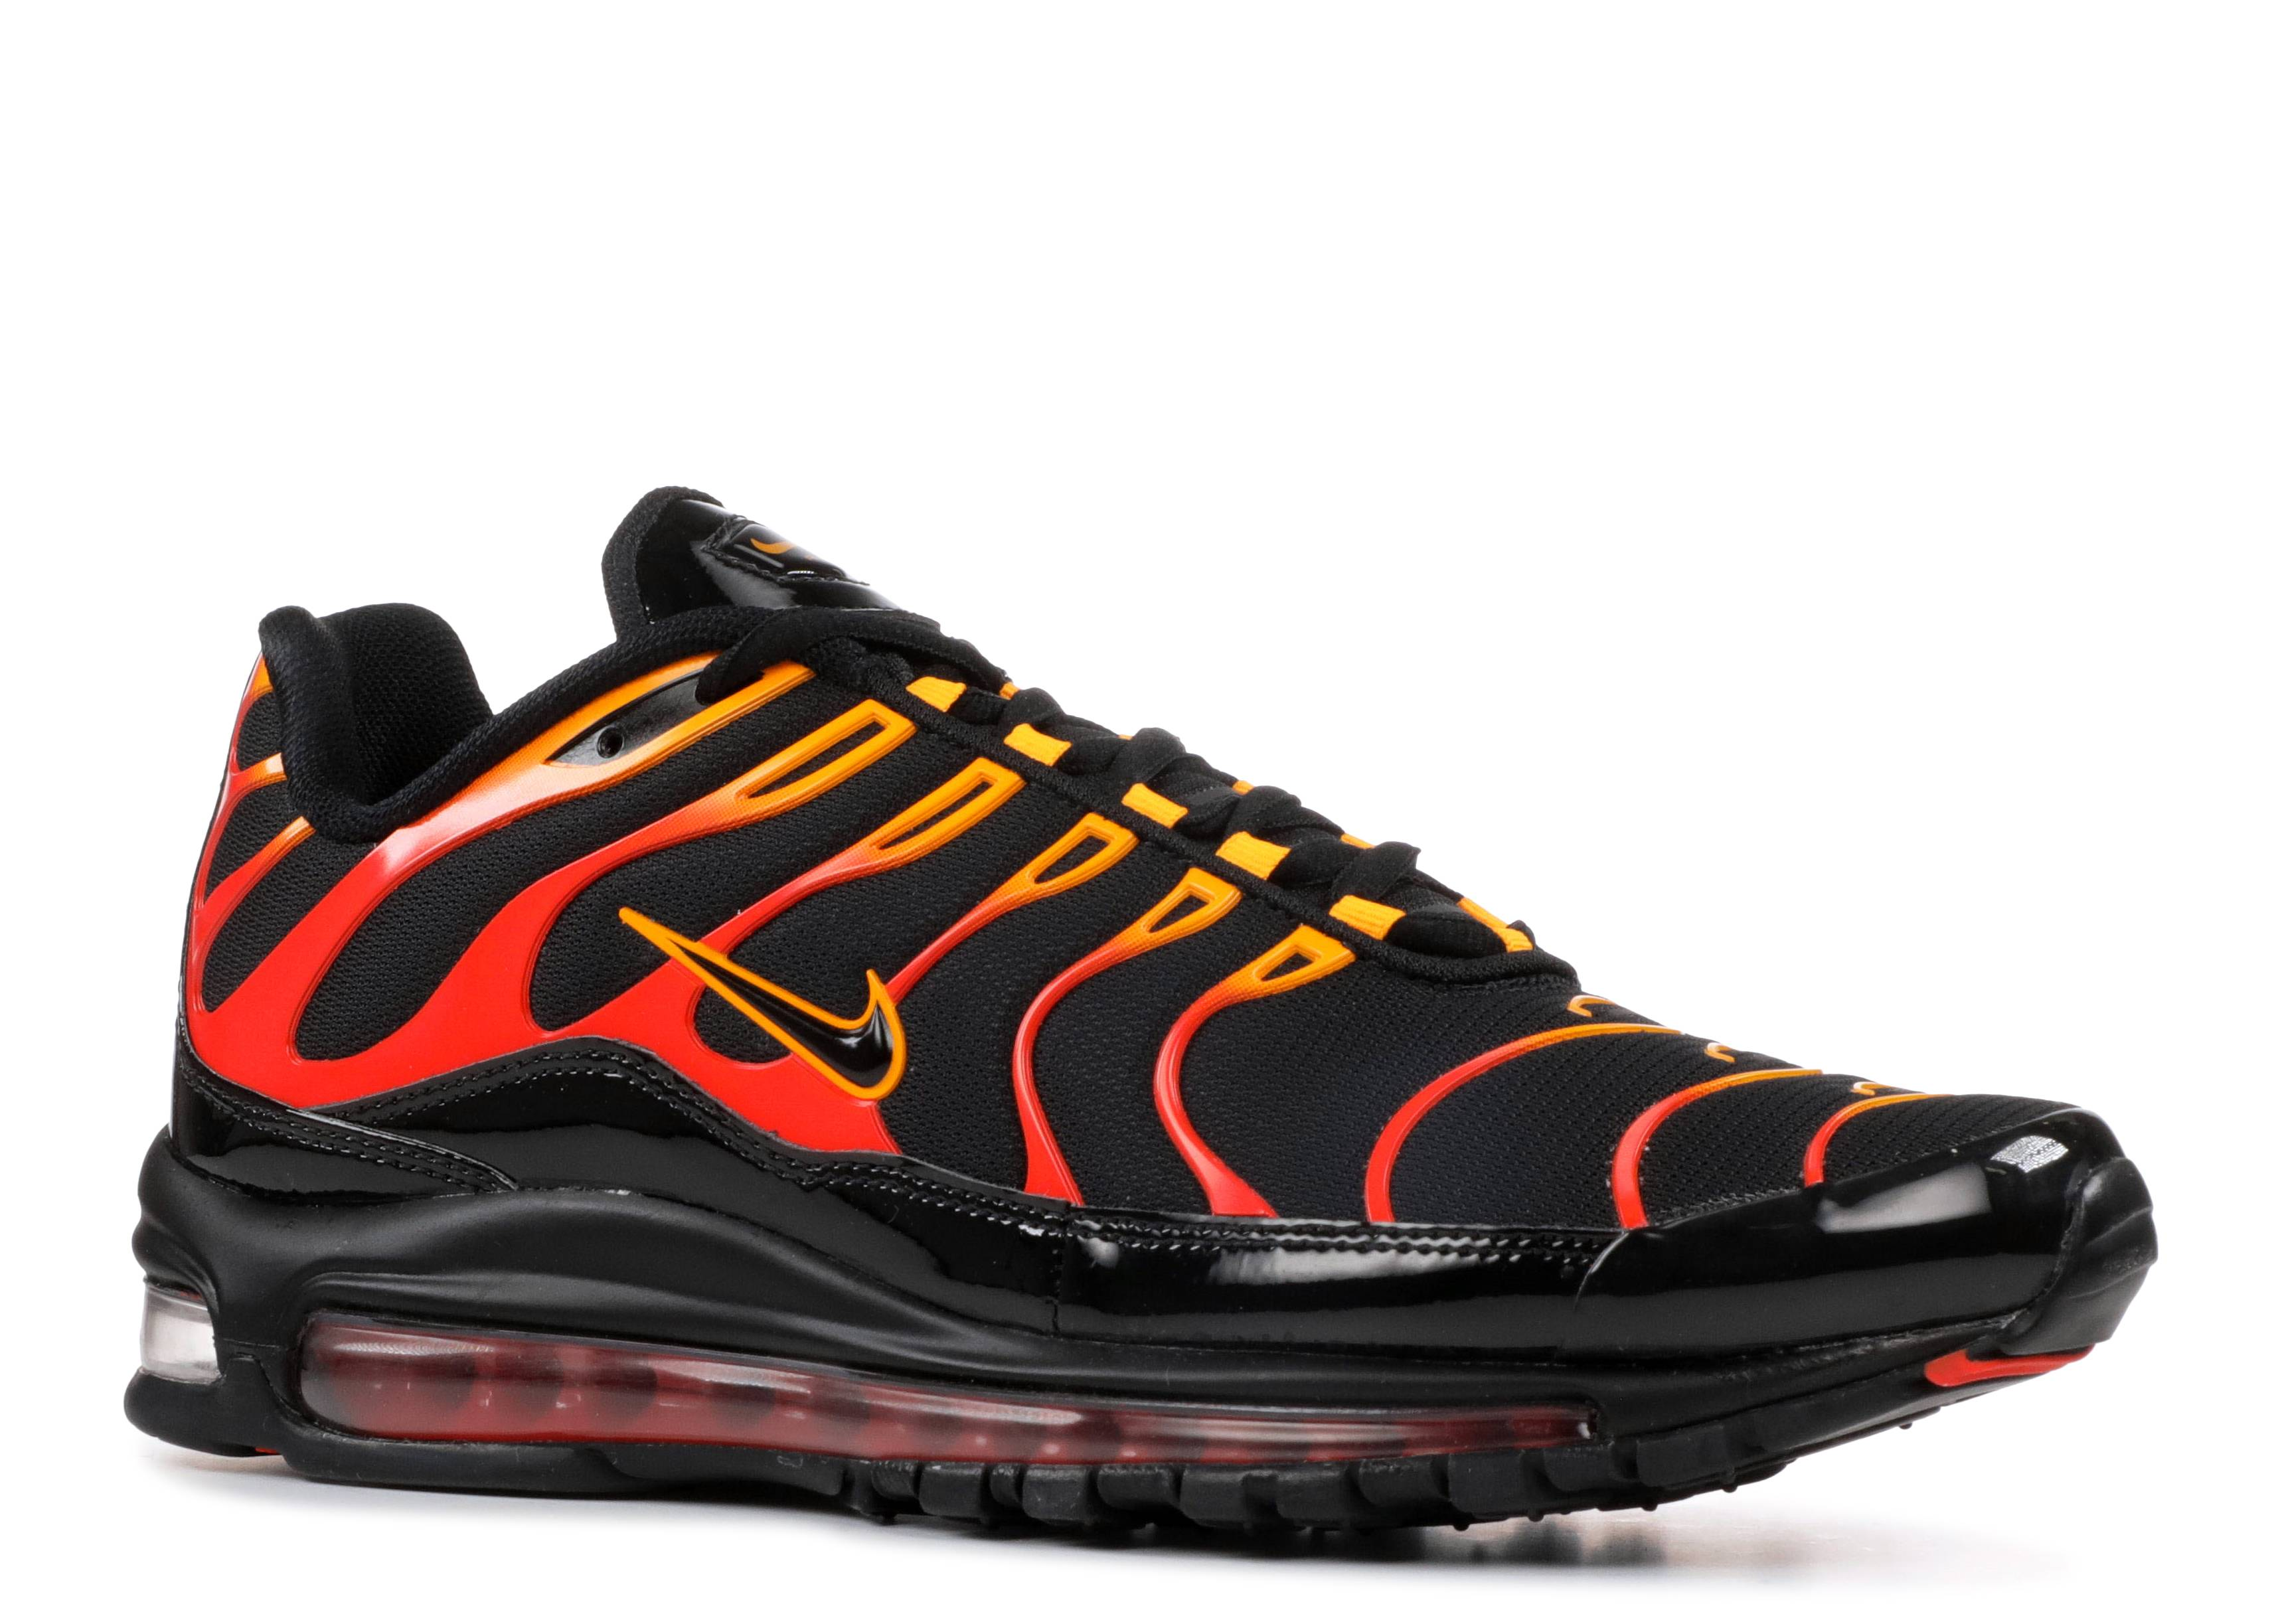 premium selection 07792 351c7 Air Max 97plus